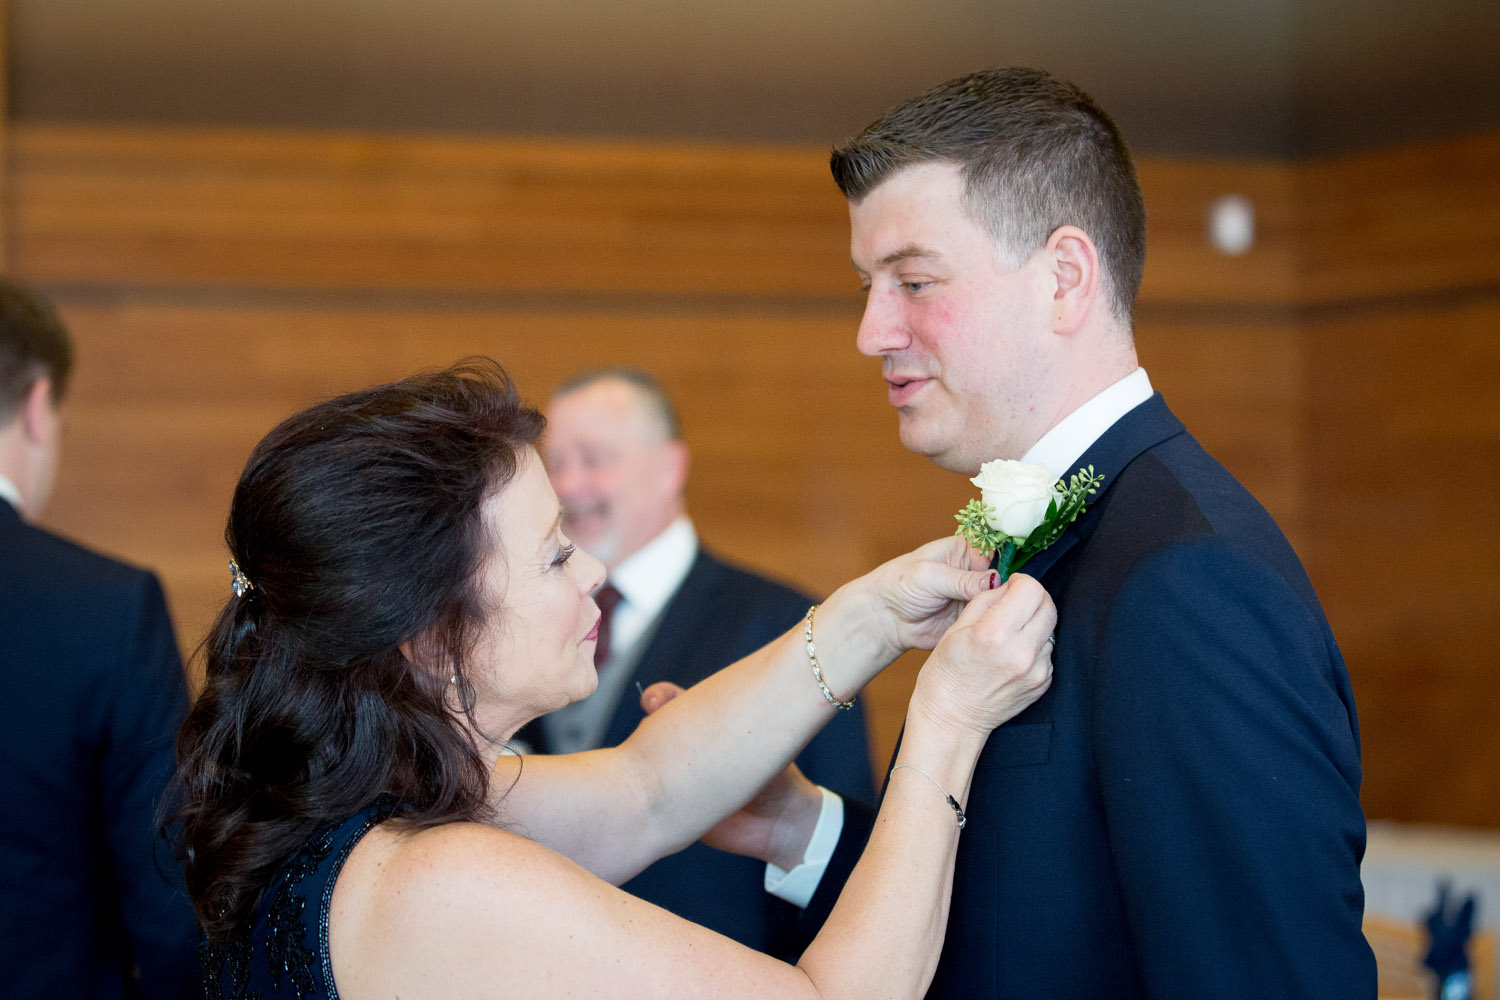 03-wedding-day-groom-getting-ready-mom-mother-pinning-boutineer-mahonen-photography.jpg